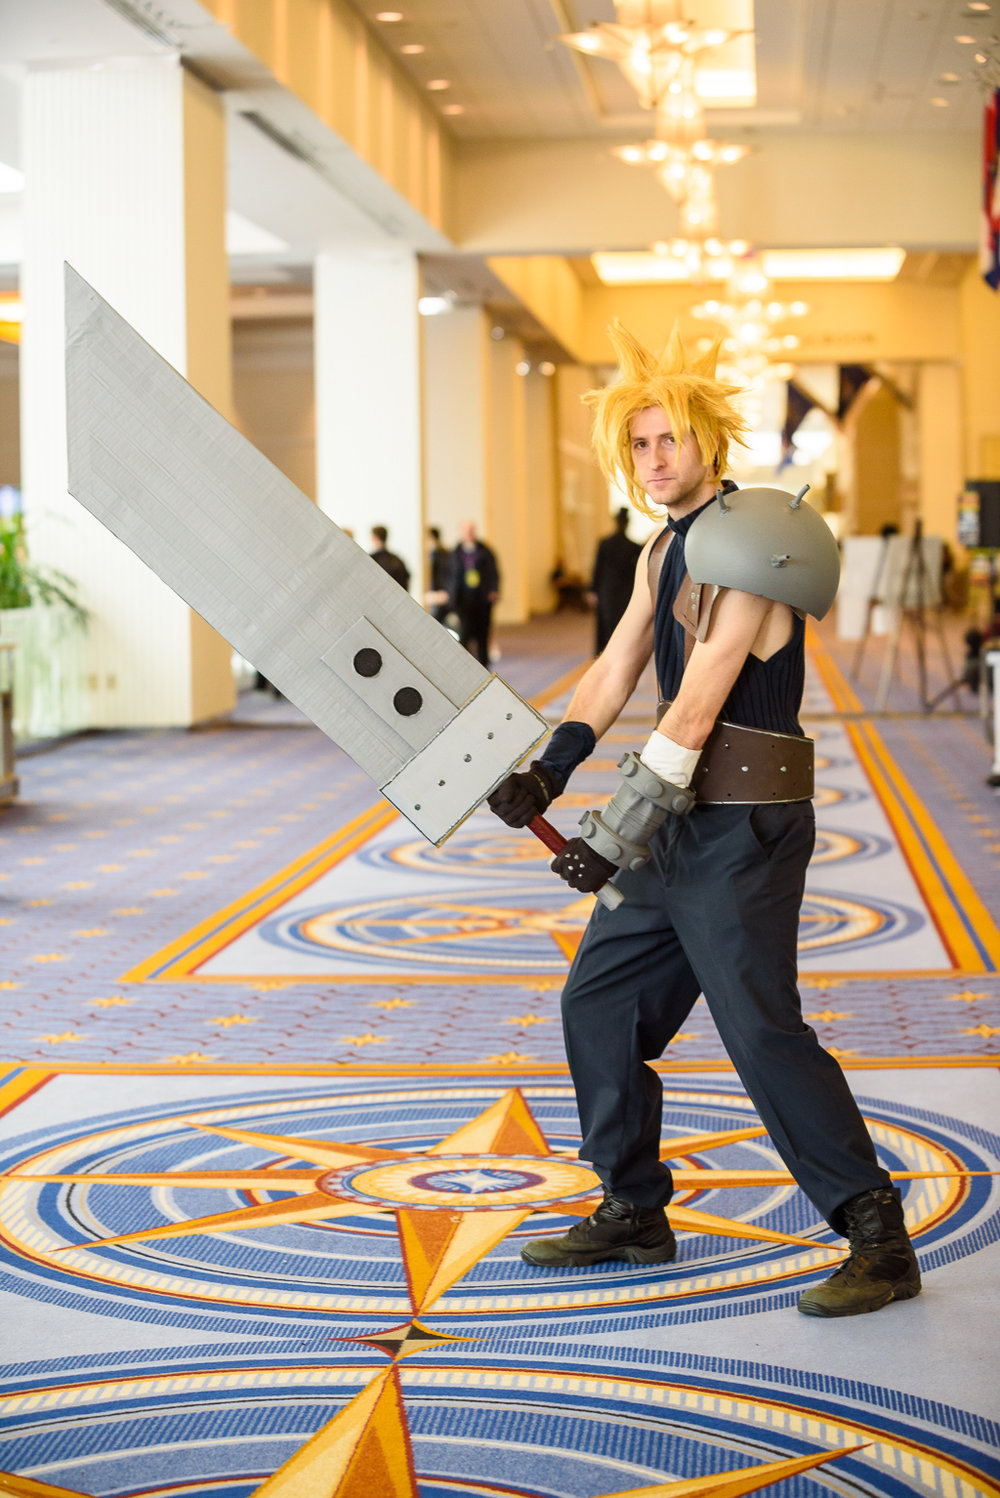 Magfest-Cosplay-6.jpg